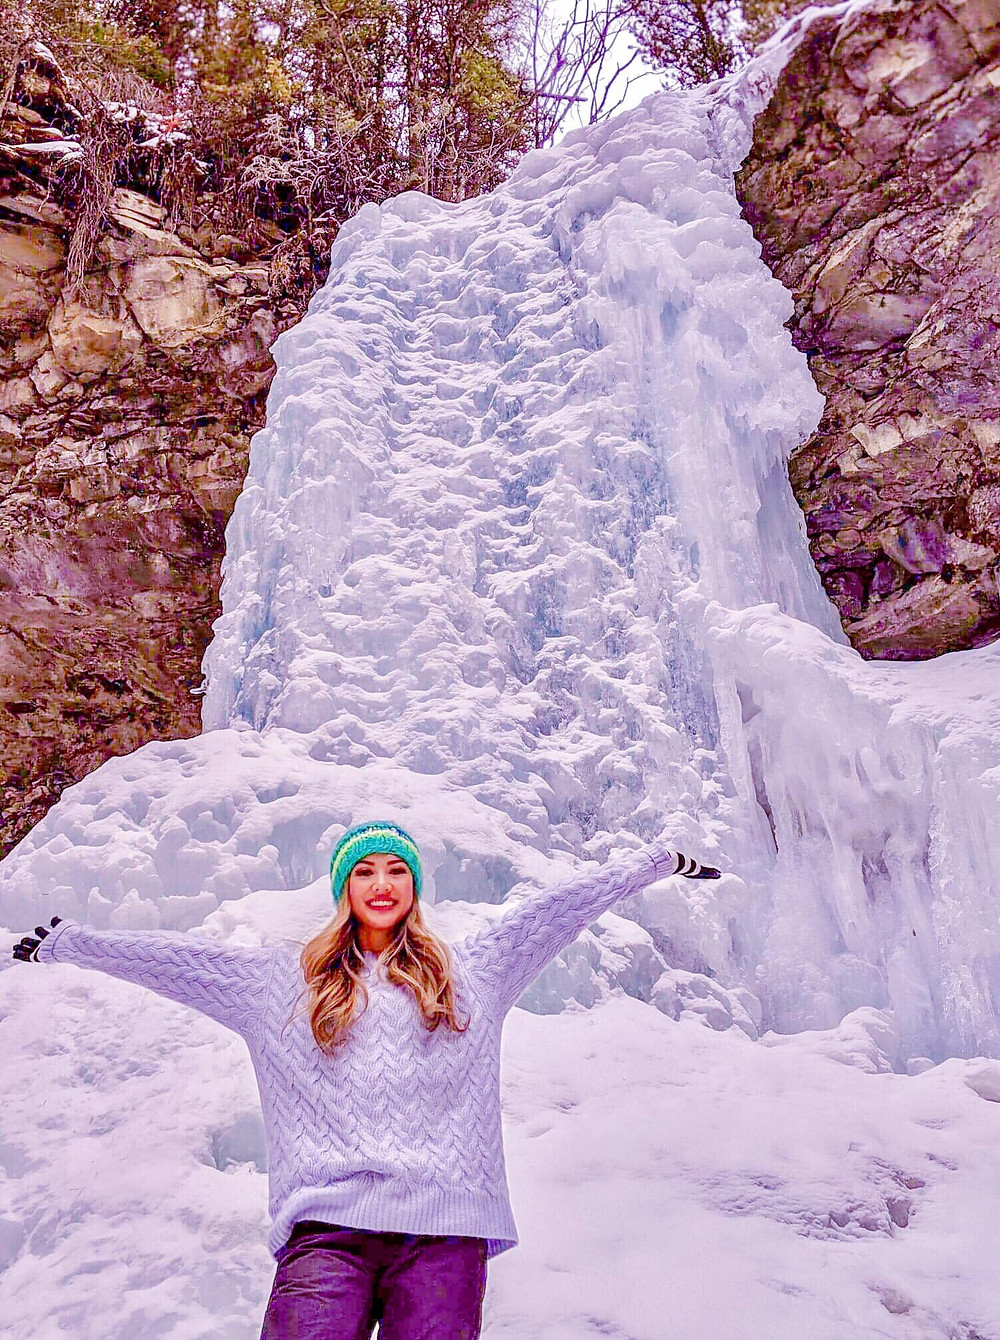 Photograph of happy girl travelling to see frozen glacier waterfall in Canadian rocky mountains, located in Kananaskis Alberta in Canada during wintertime.